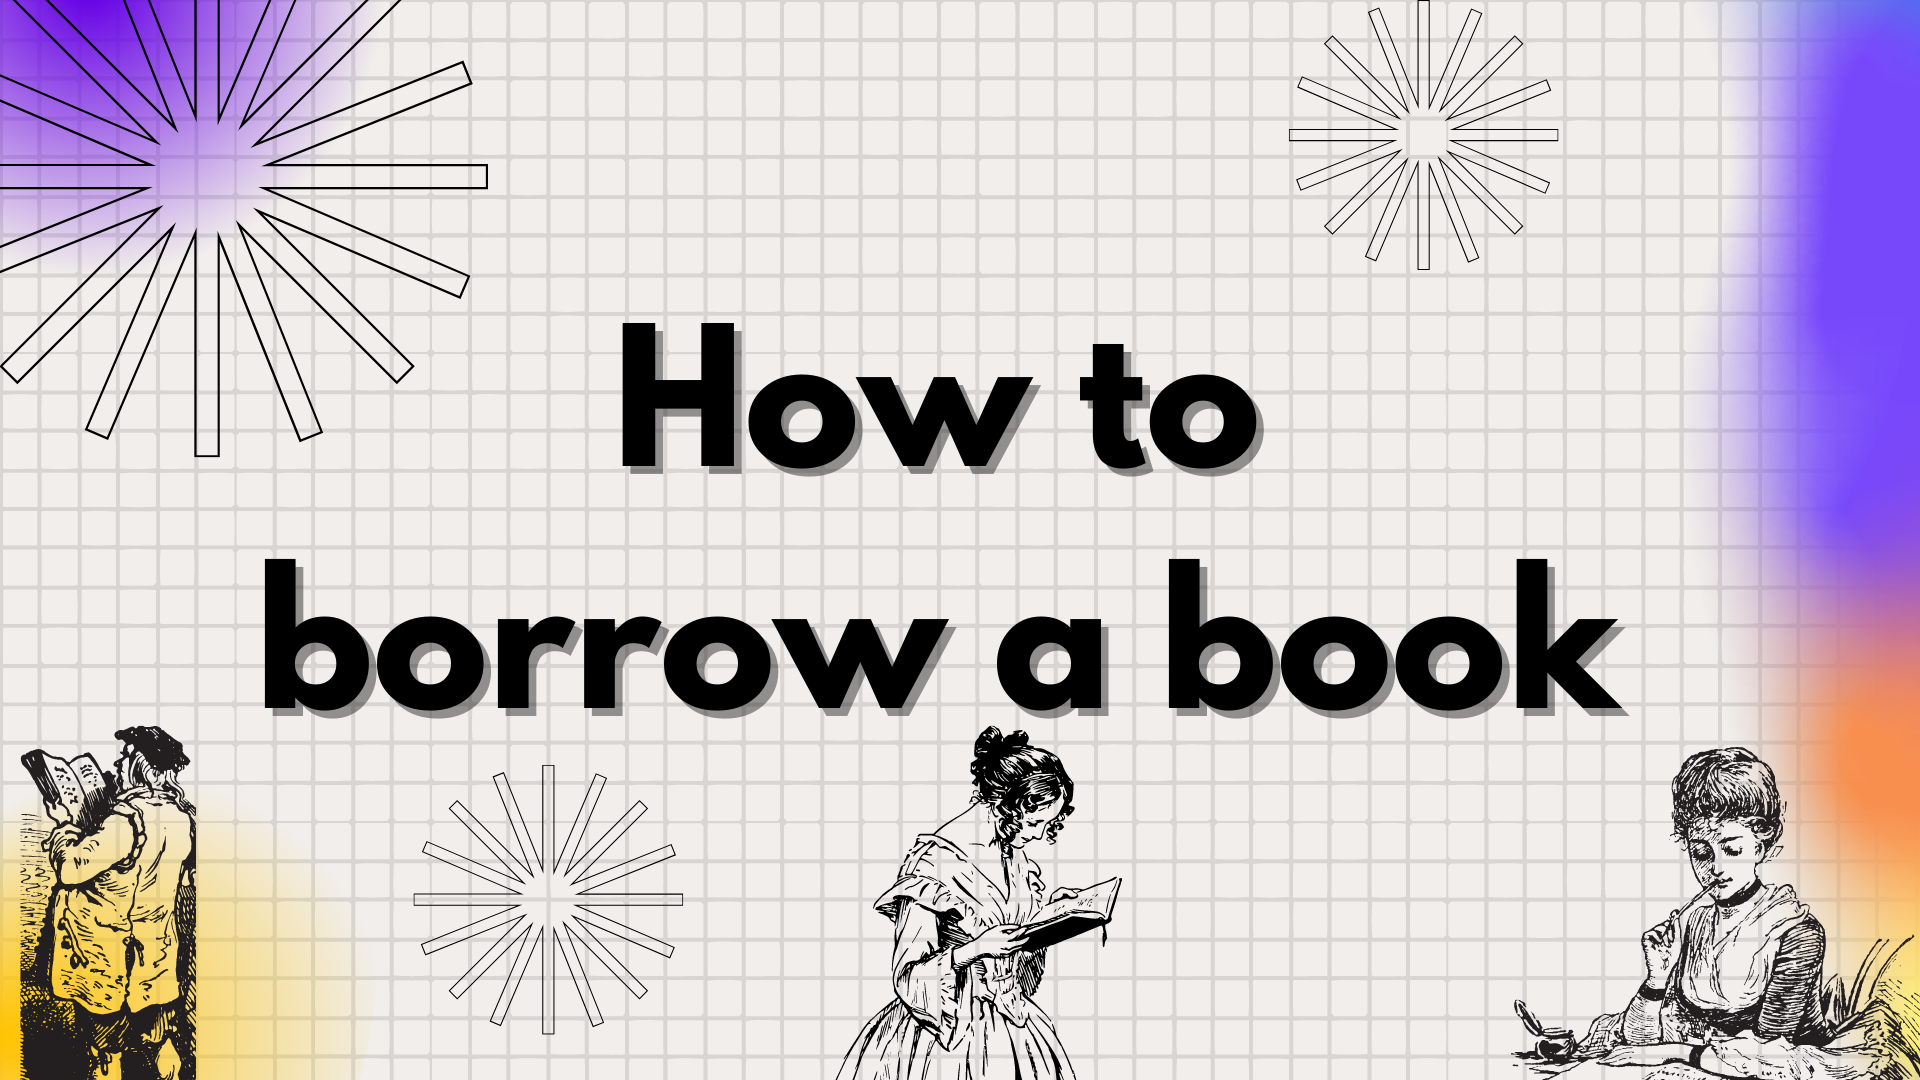 Finding and borrowing a book